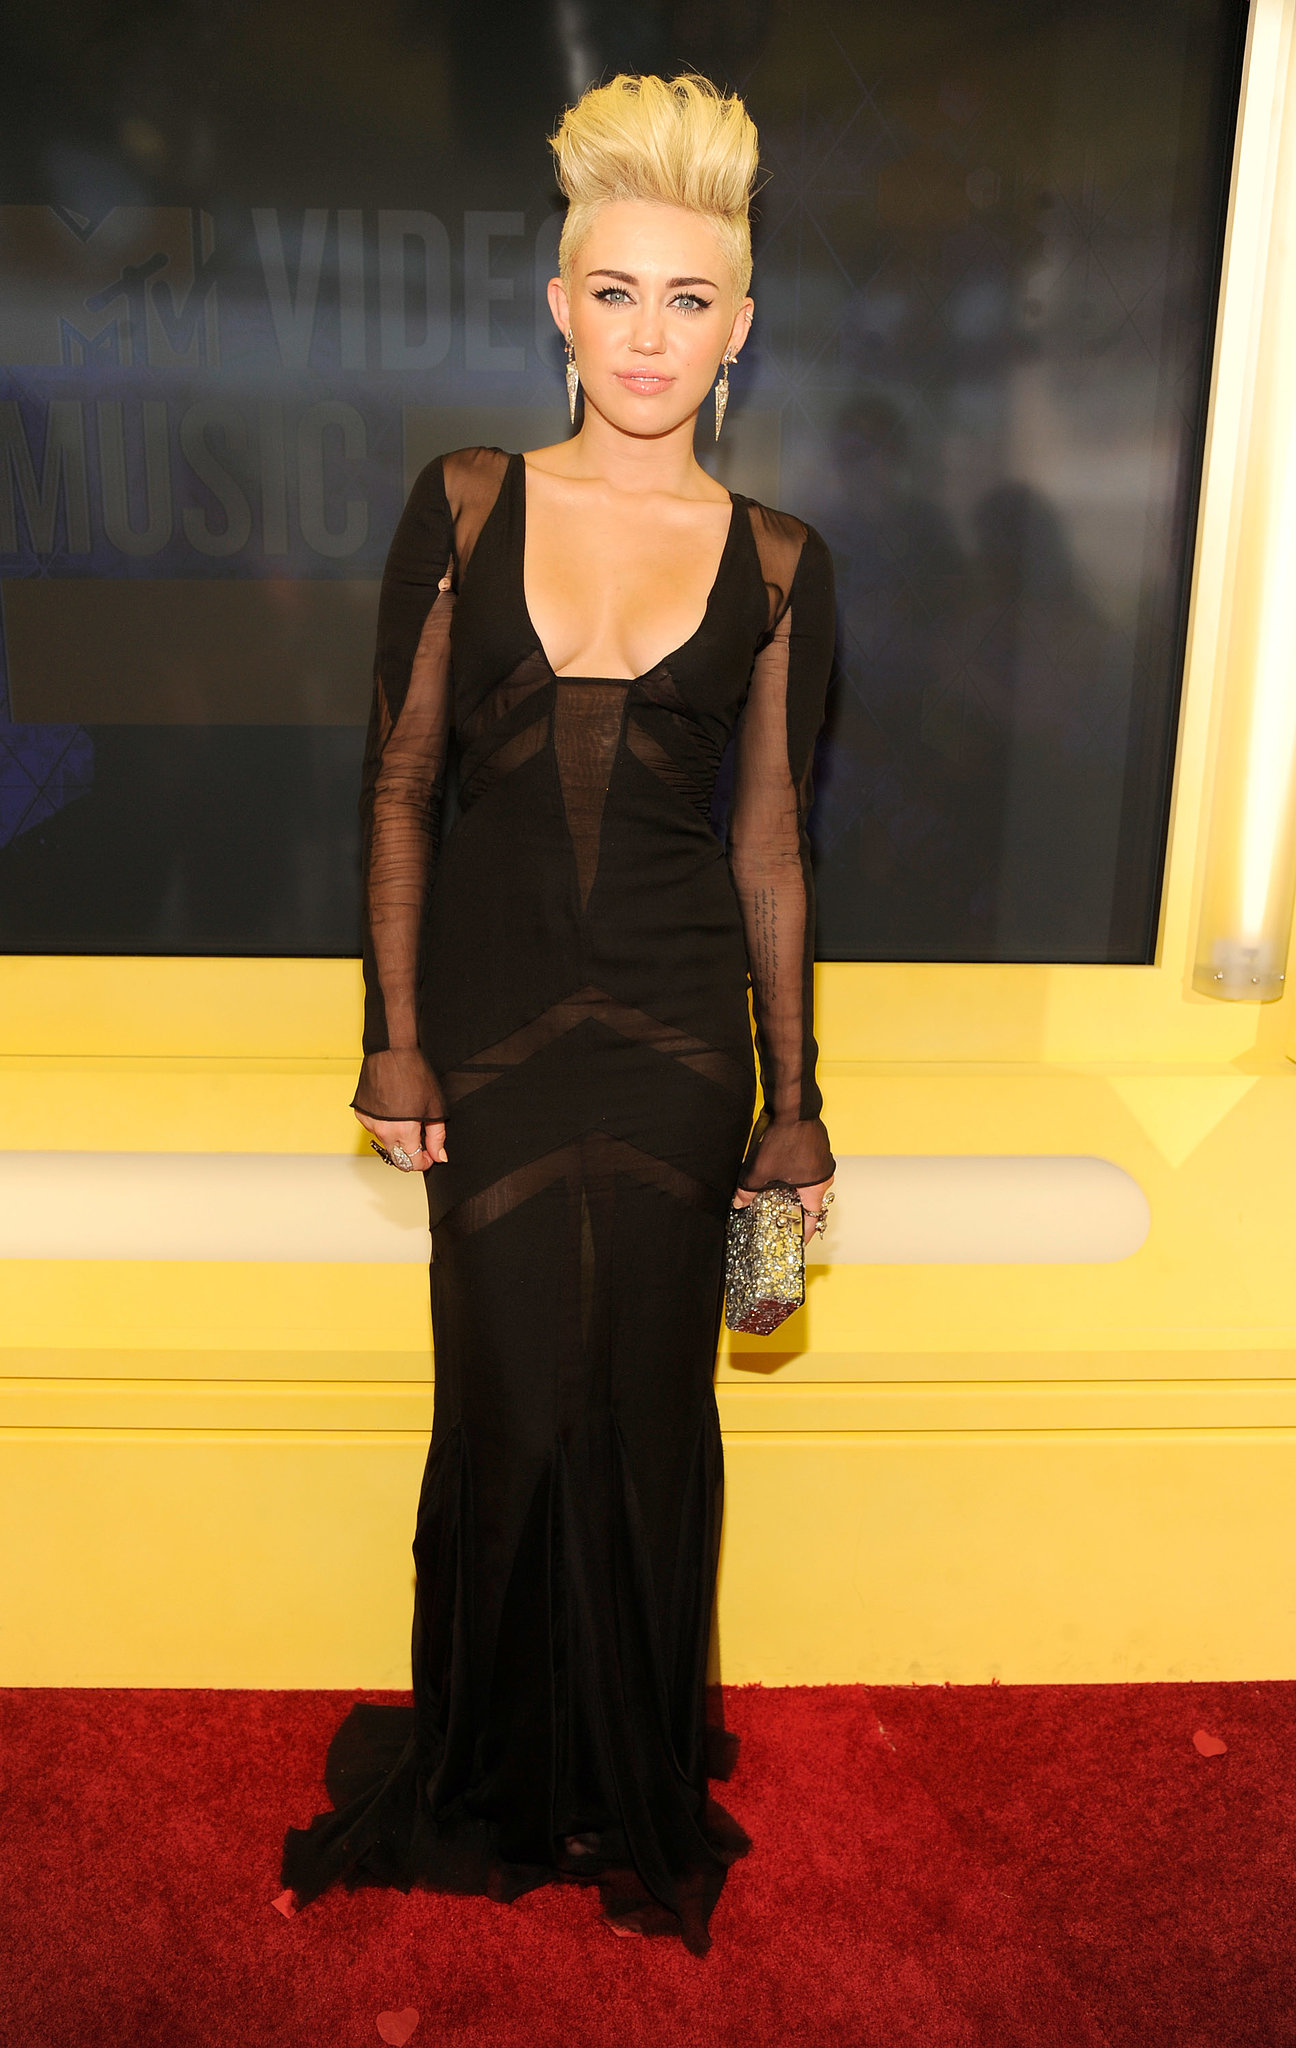 Miley Cyrus wore a sexy black frock at the 2012 VMAs.